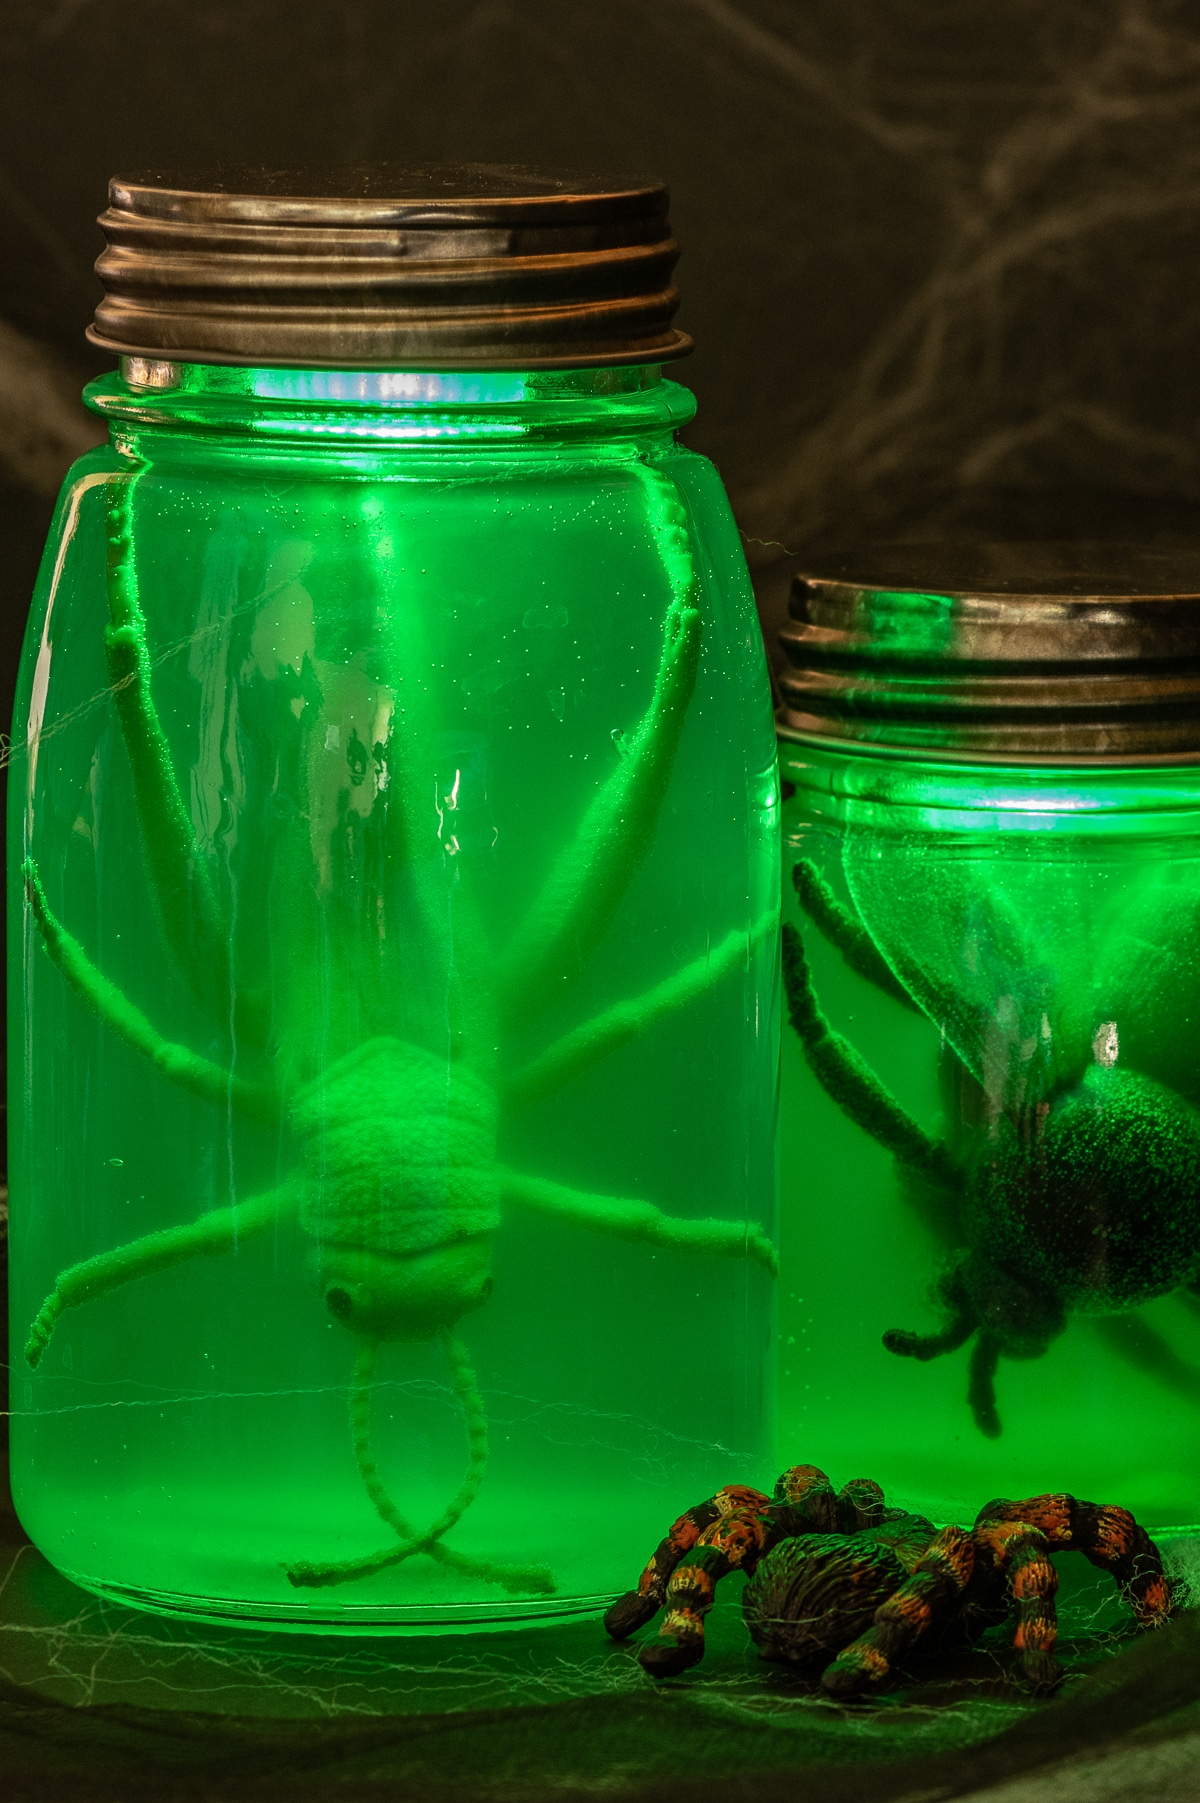 Two halloween specimen jars filled with a plastic giant fly and large fake grasshopper. The jars are glowing an eerie murky green color.